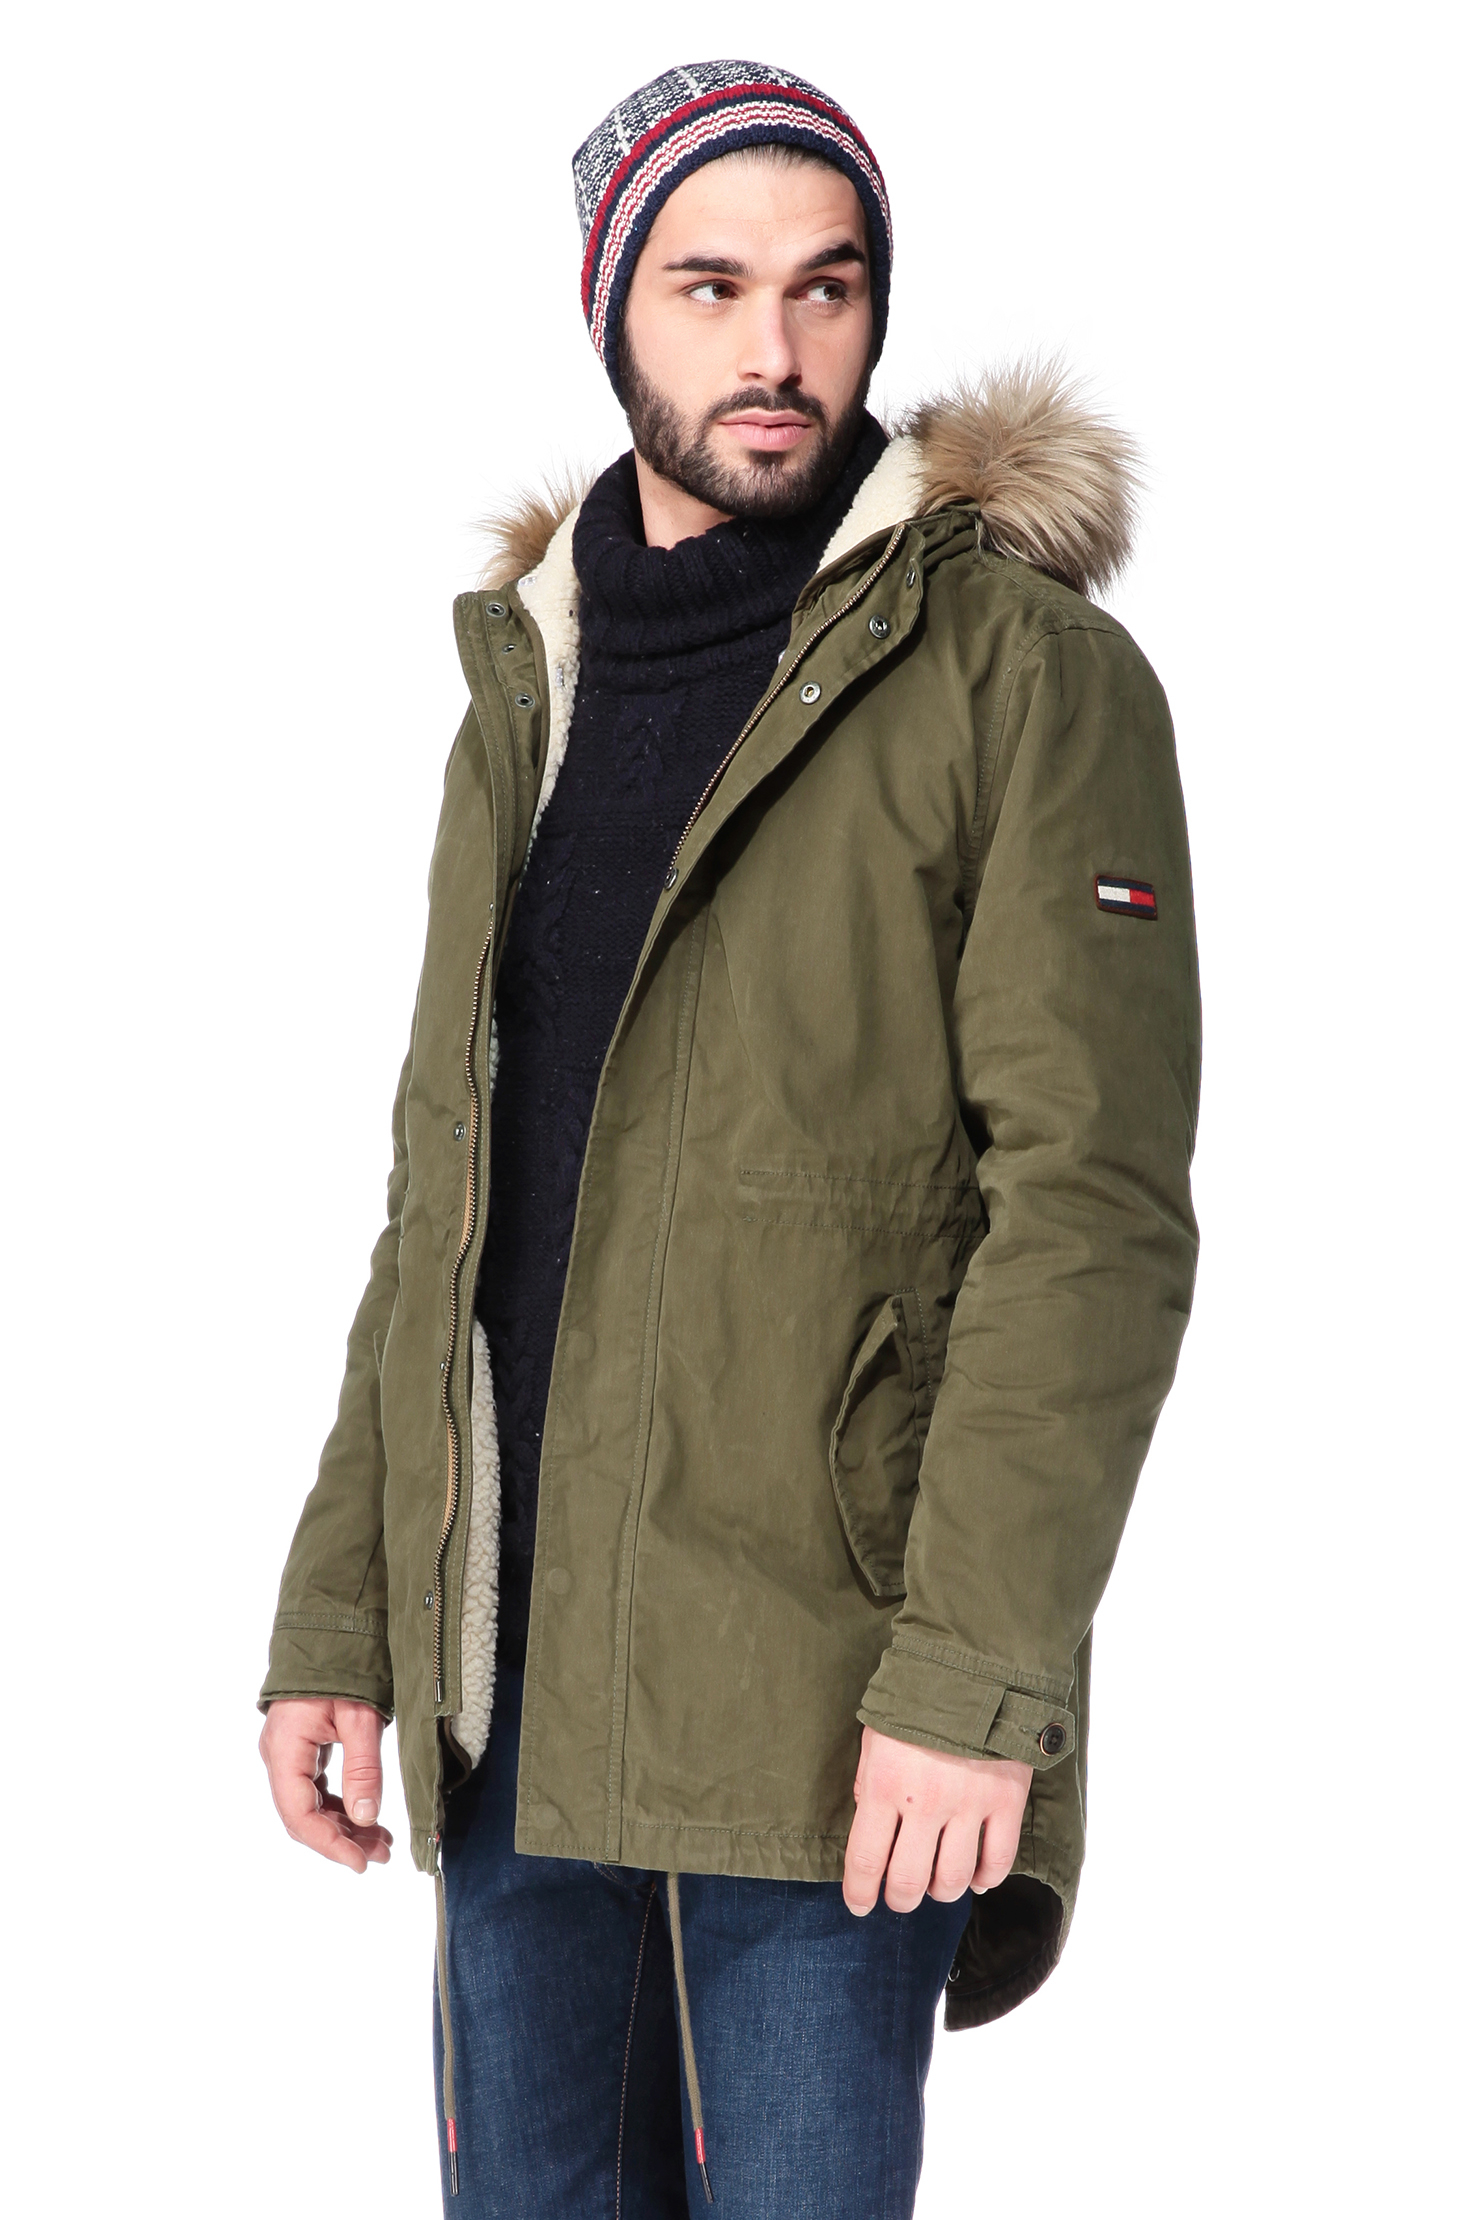 hilfiger denim parka in green for men lyst